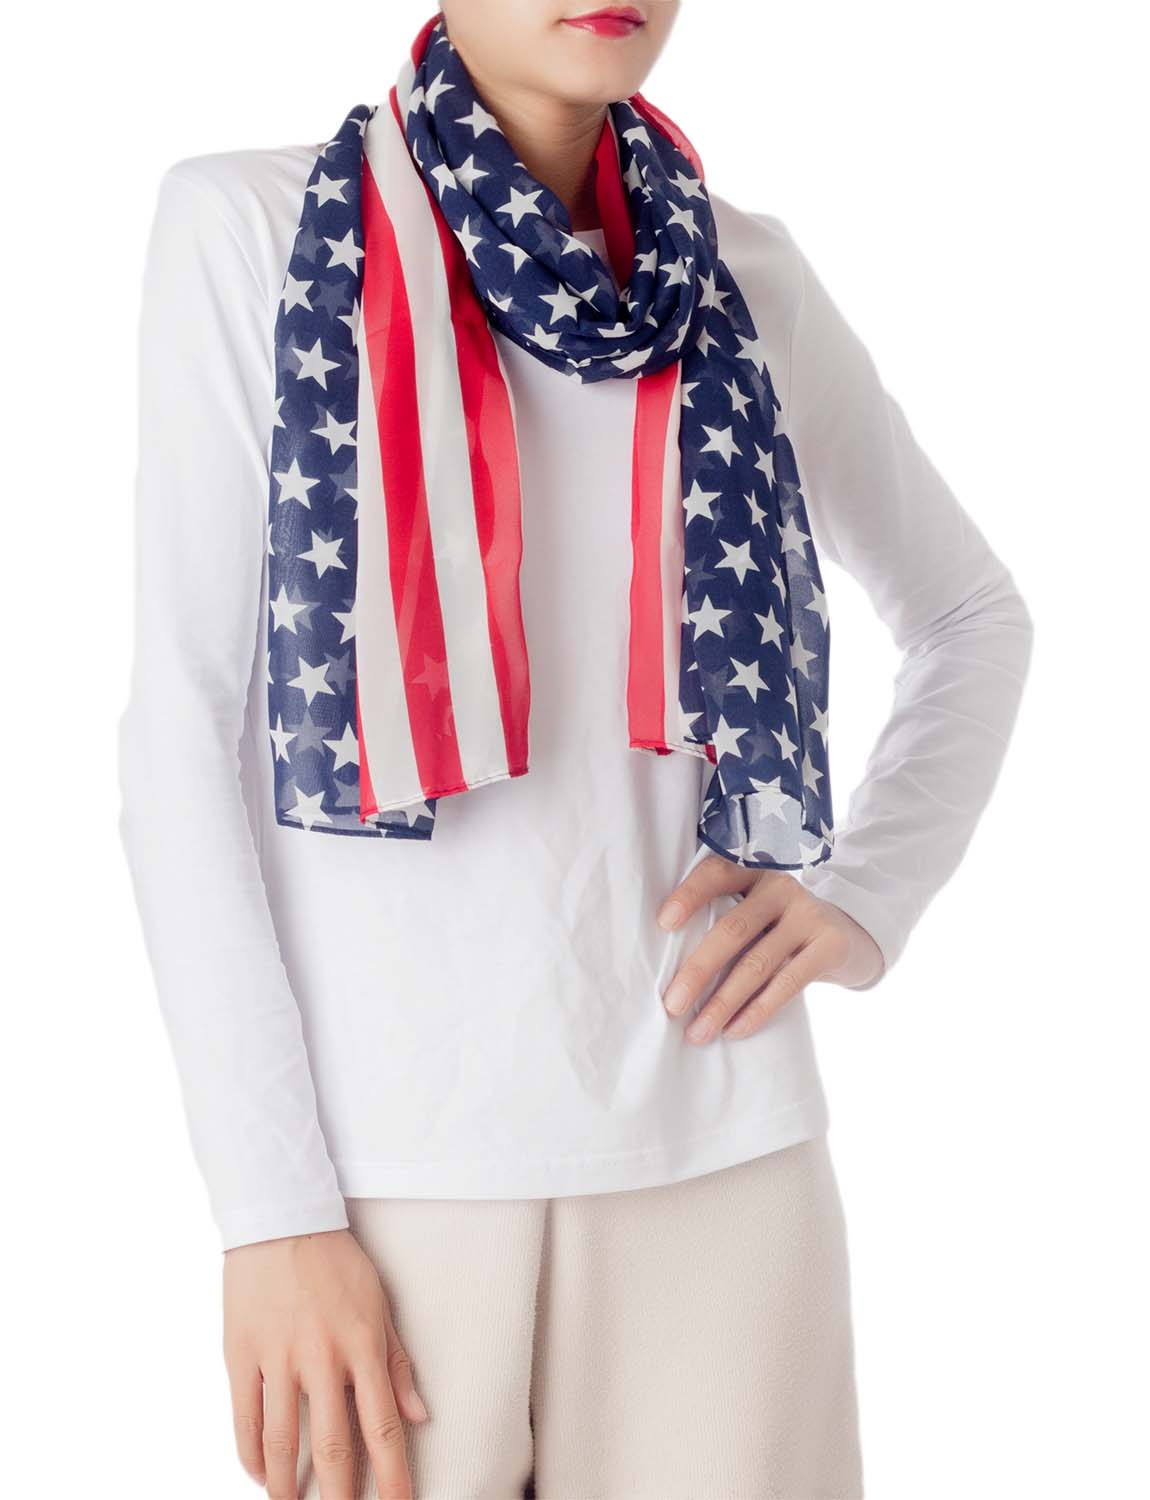 Women's American Flag Prints Large Gorgeous Lightweight Long Fashion Scarf, Size: One Size, Navy